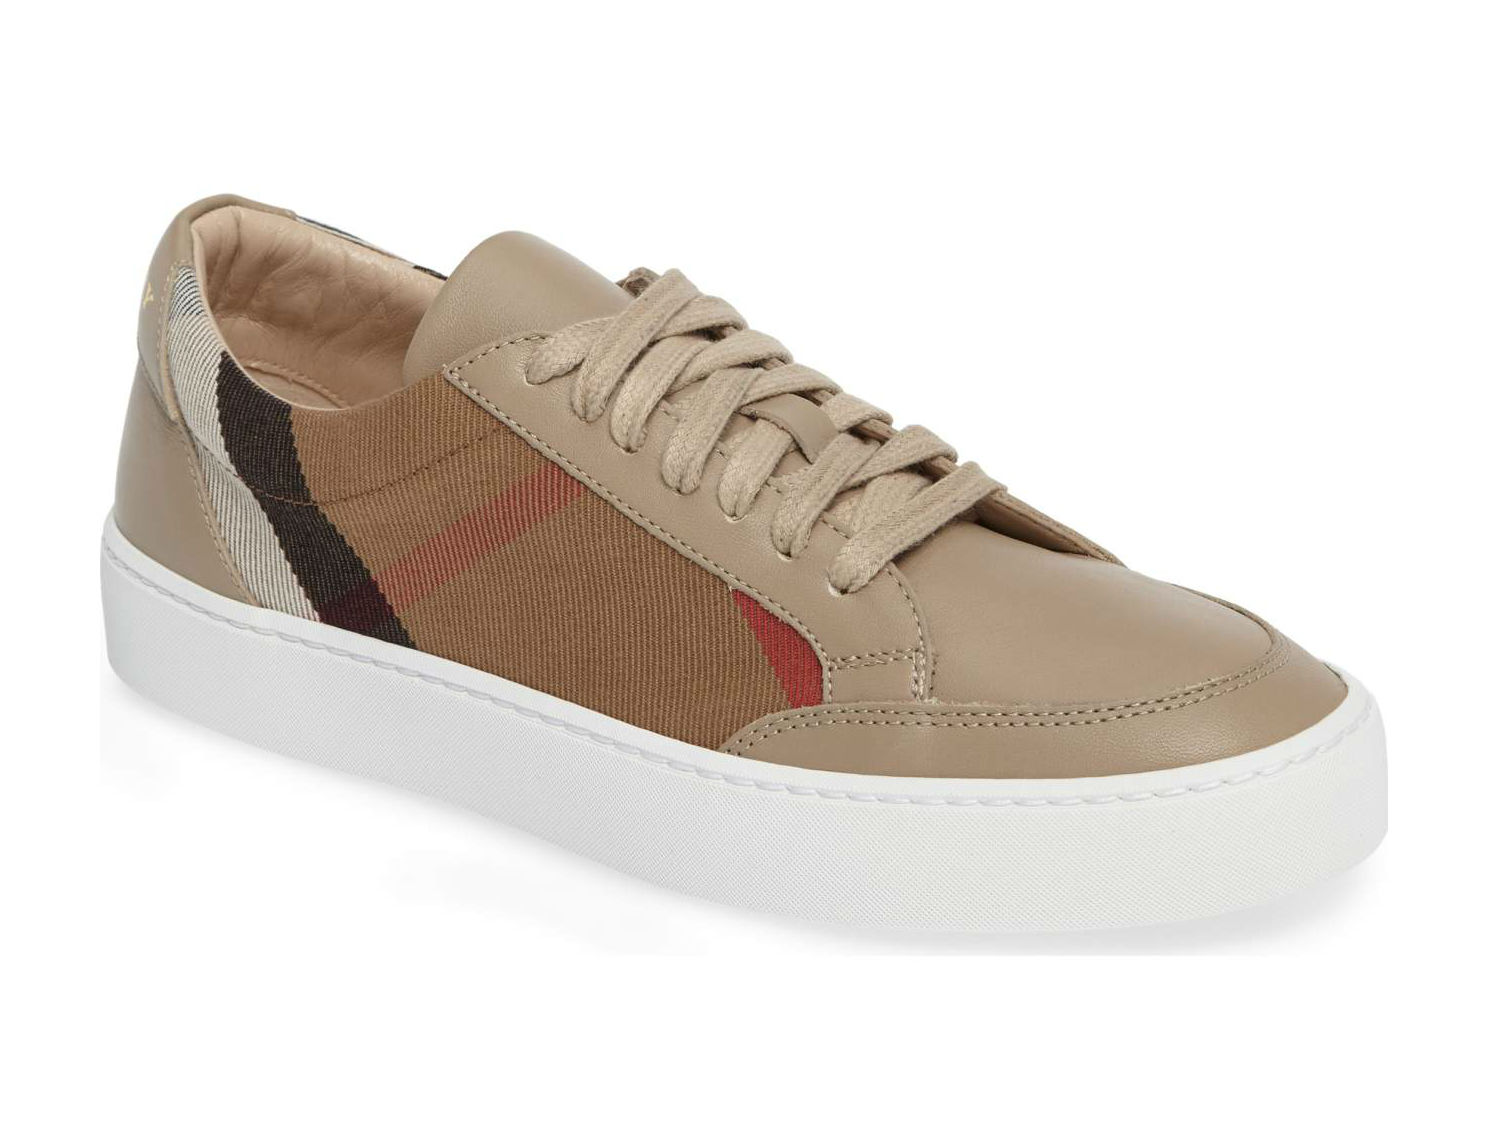 The Burberry Salmond Sneakers Perfect